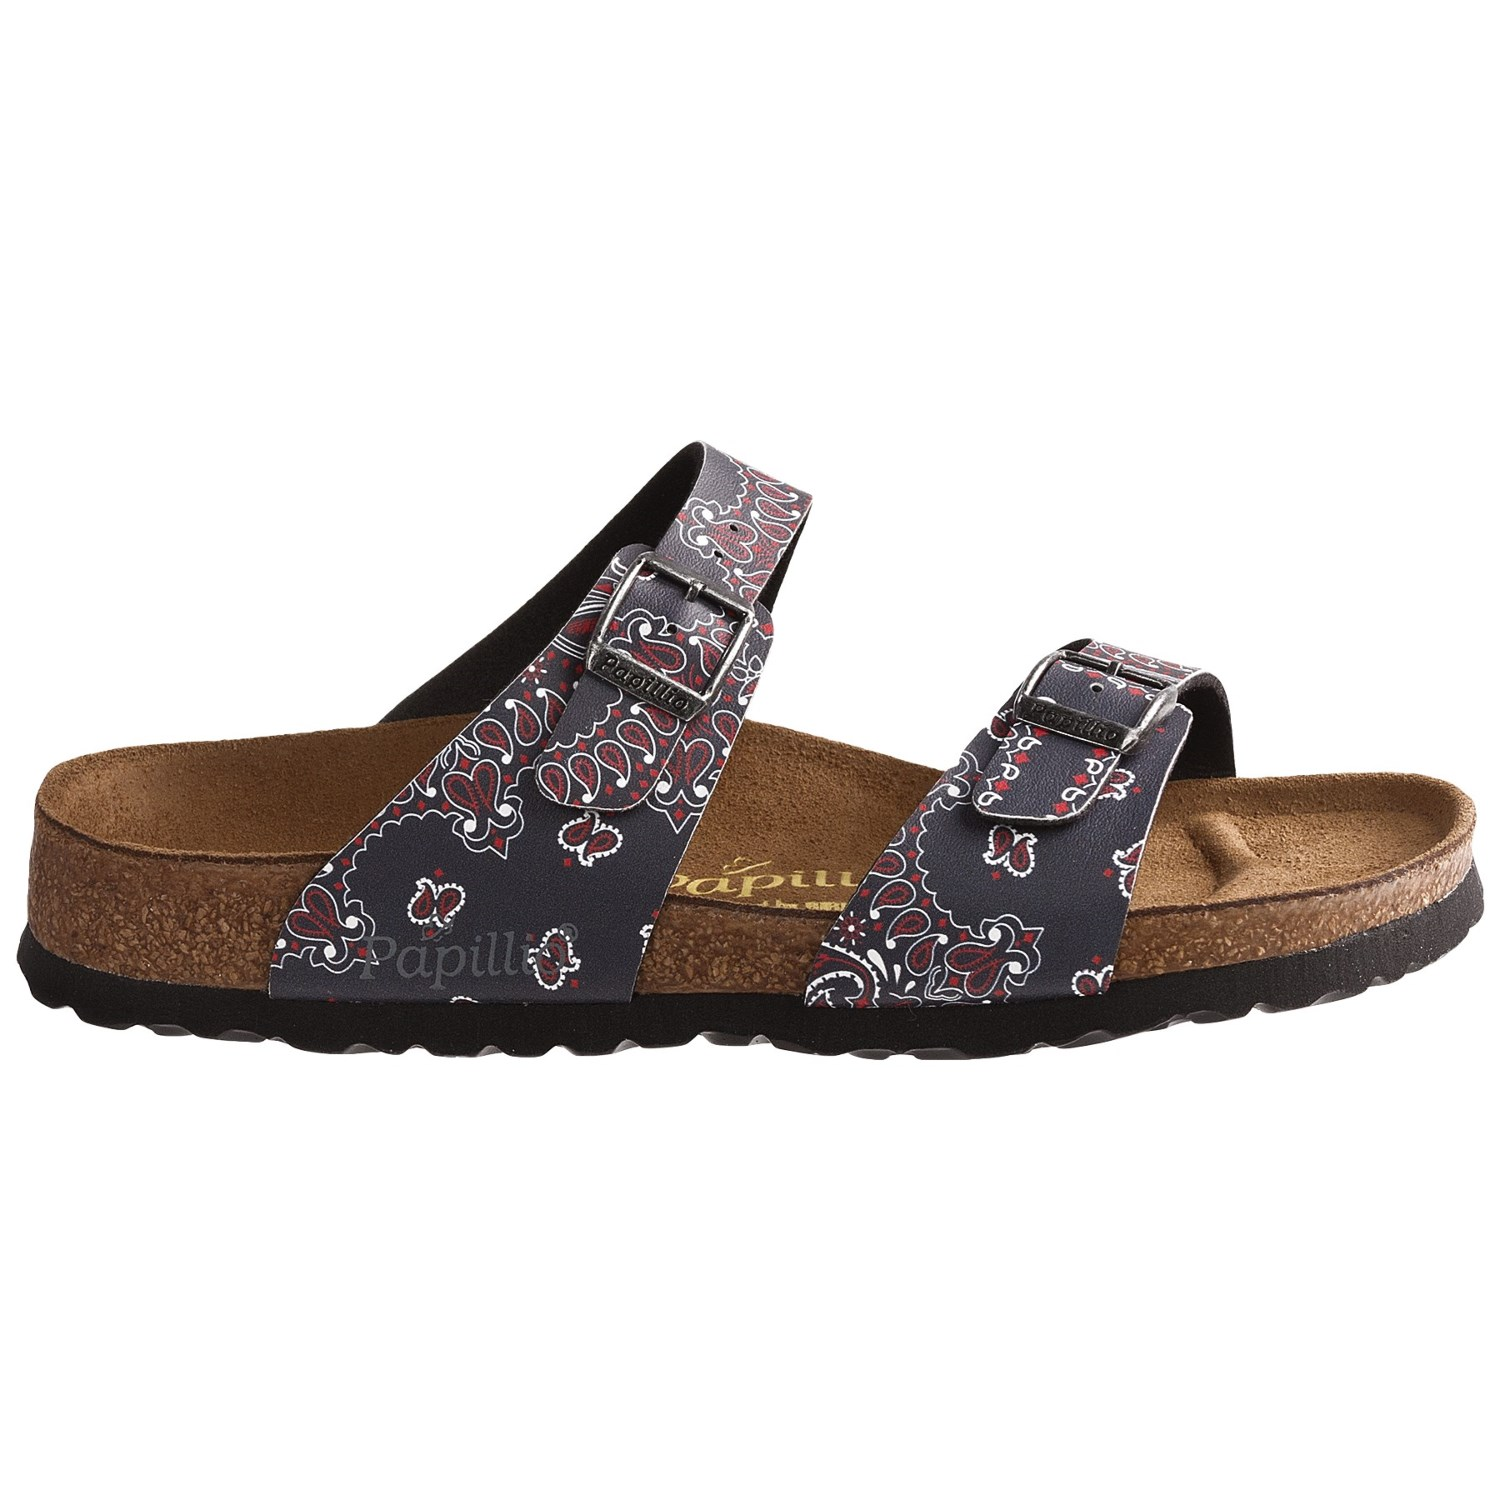 birkenstock sandals for women sydney